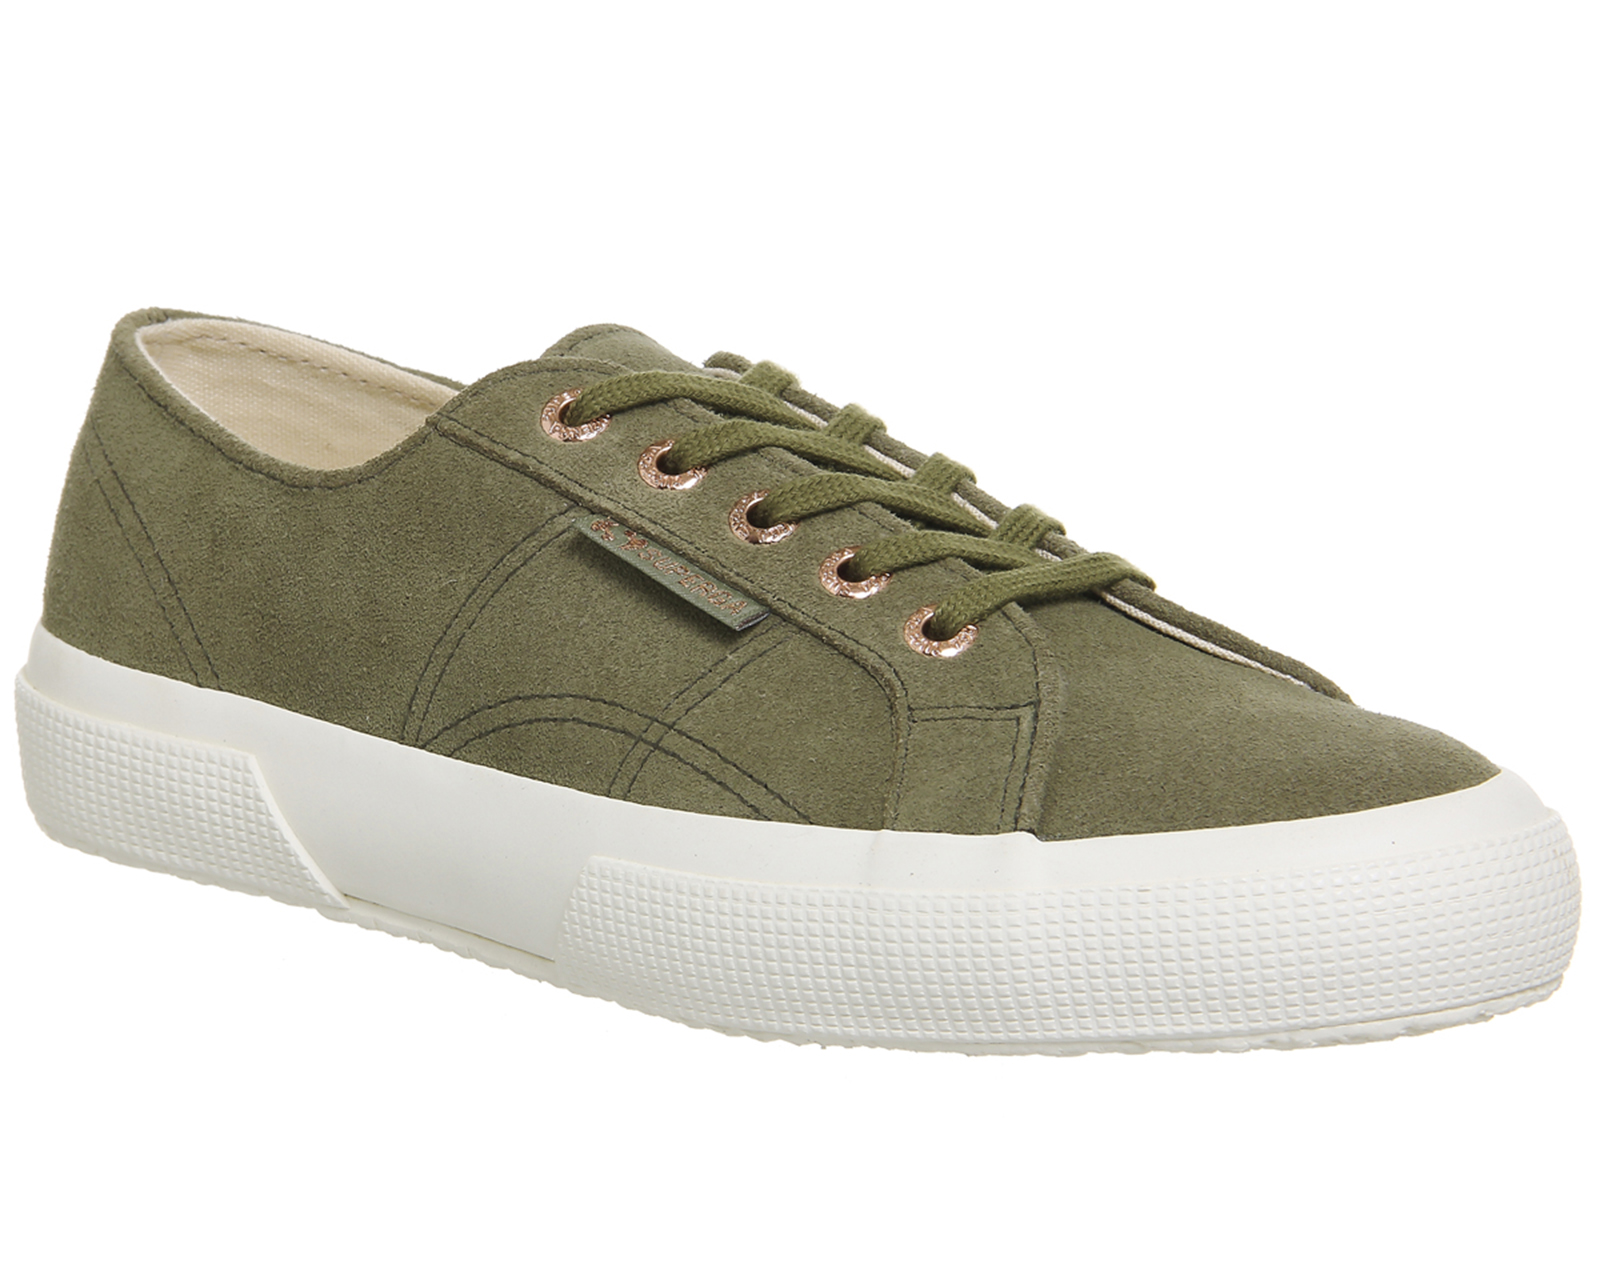 2018 2017 Superga Womens 2750 Trainers Aloe Green Suede Exclusive Shoes Size 10 US 10 8 7